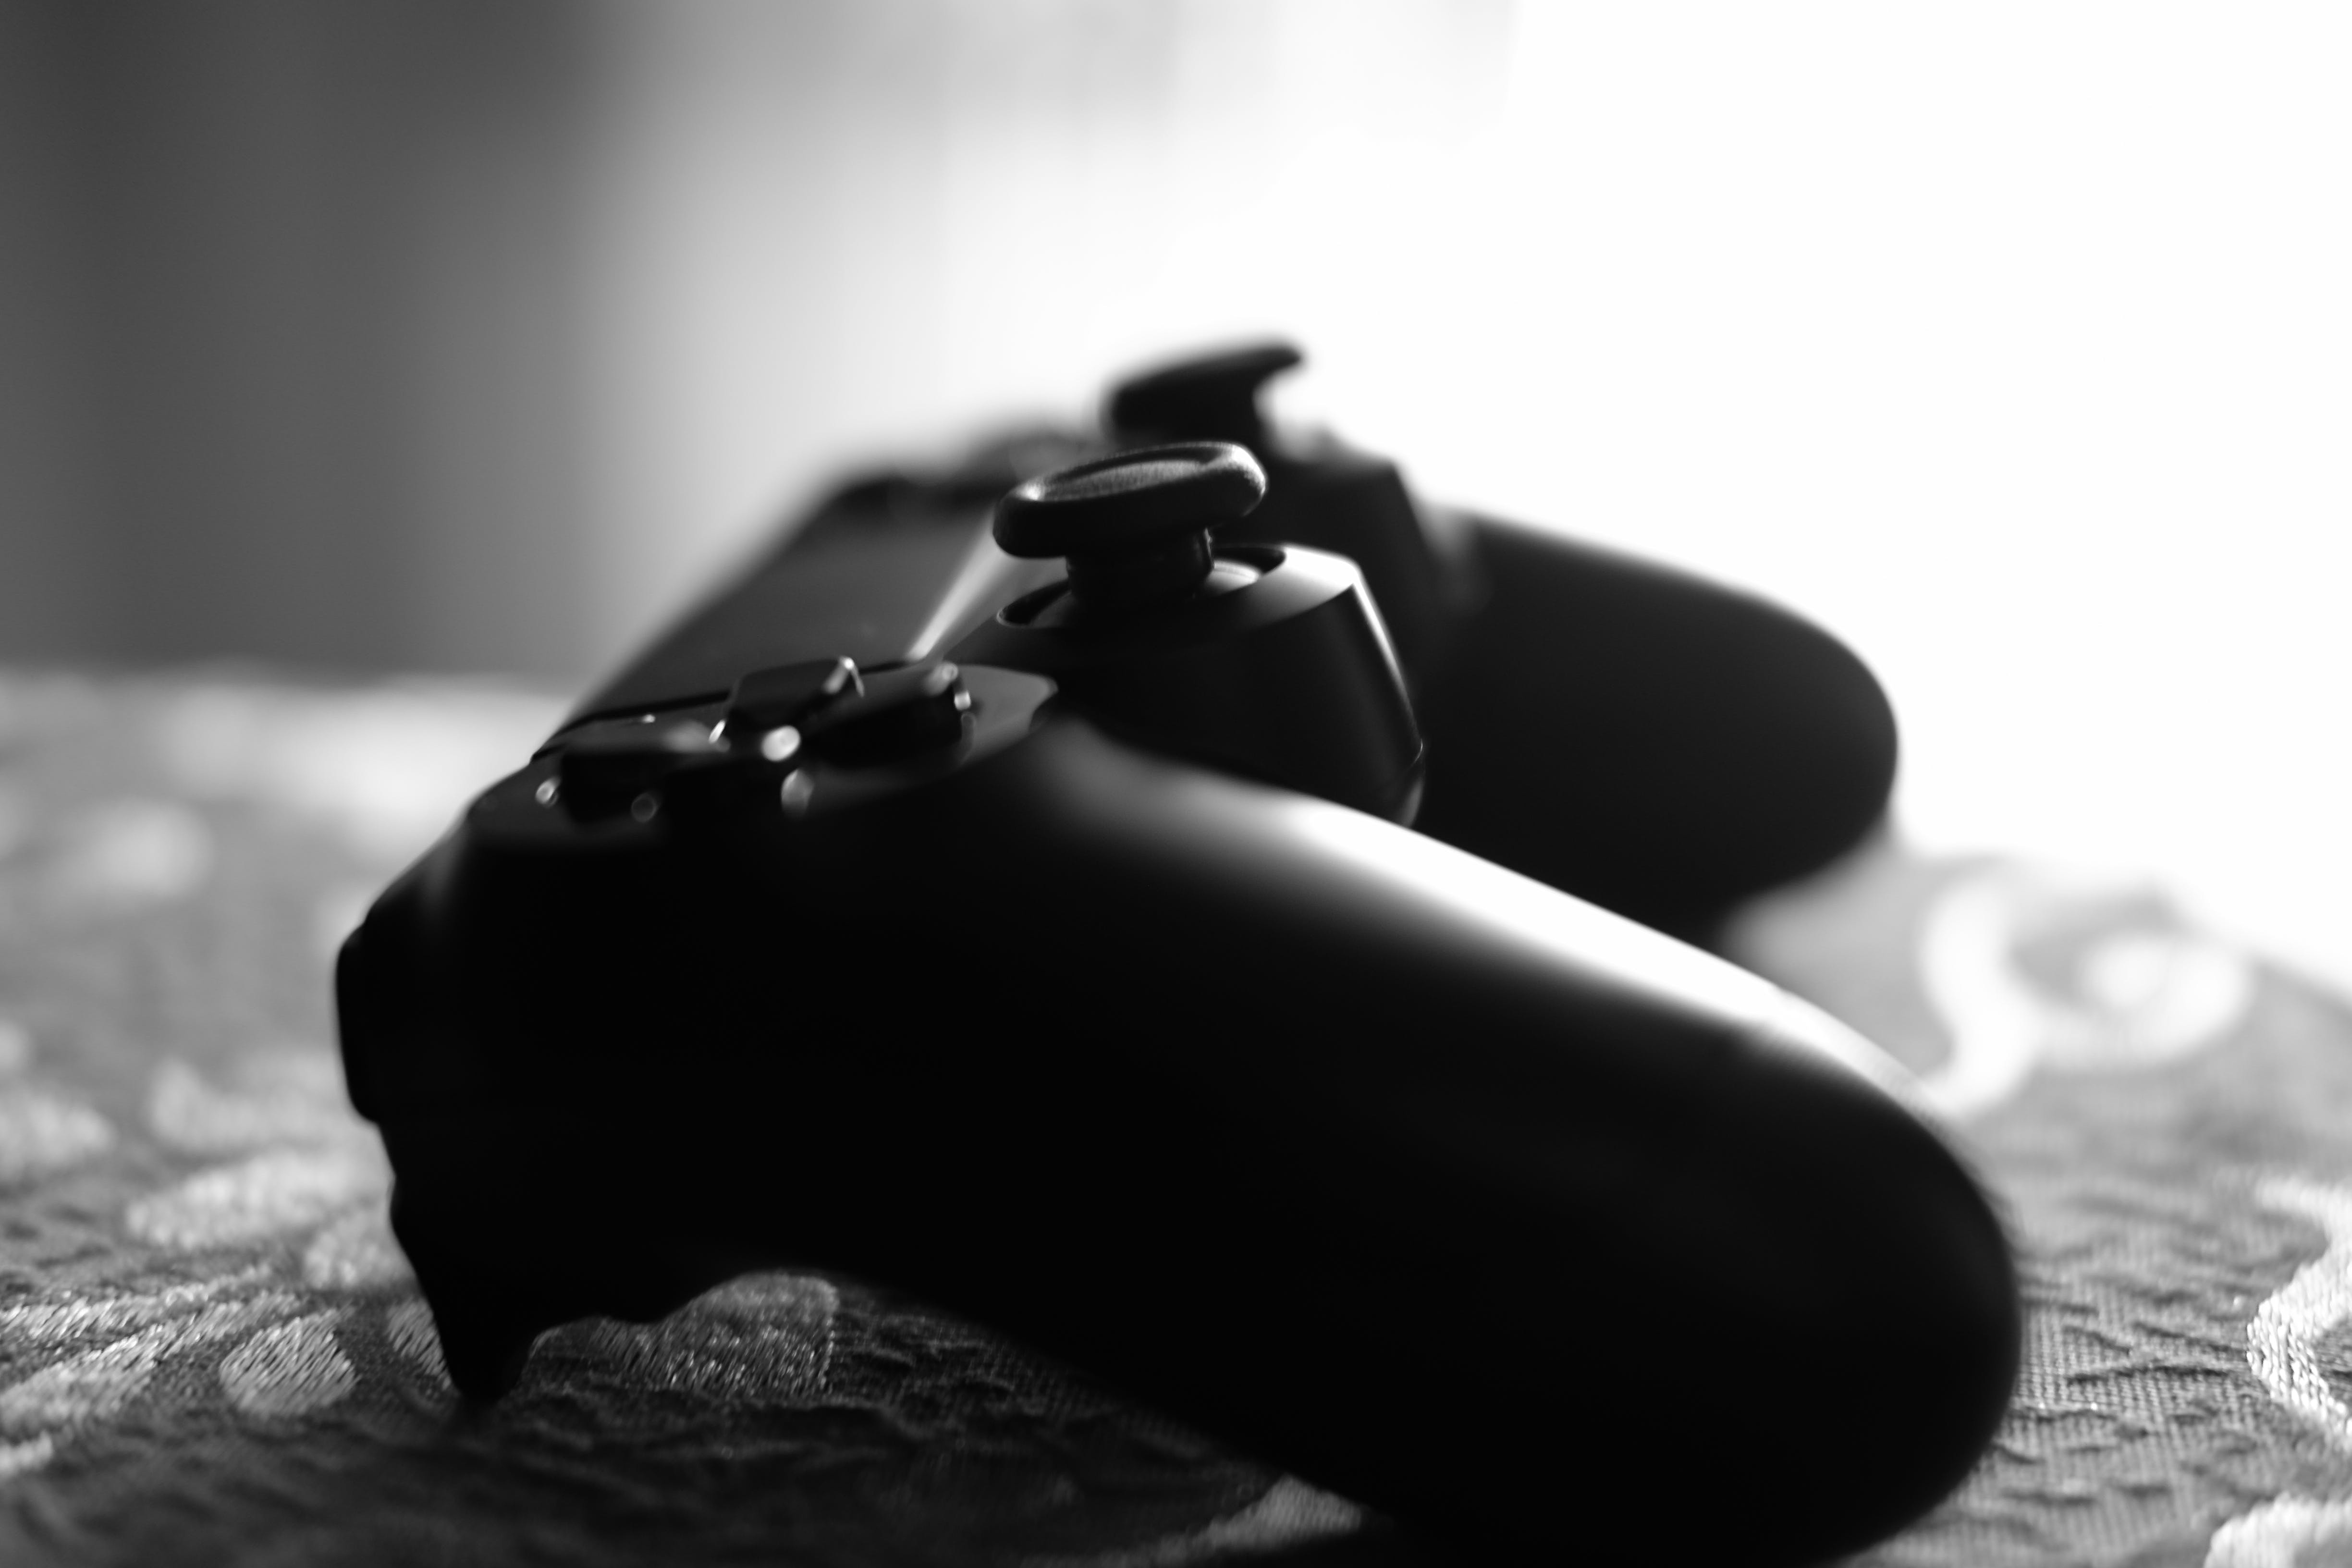 Free stock photo of games, joystick, monochrome, playstation 4